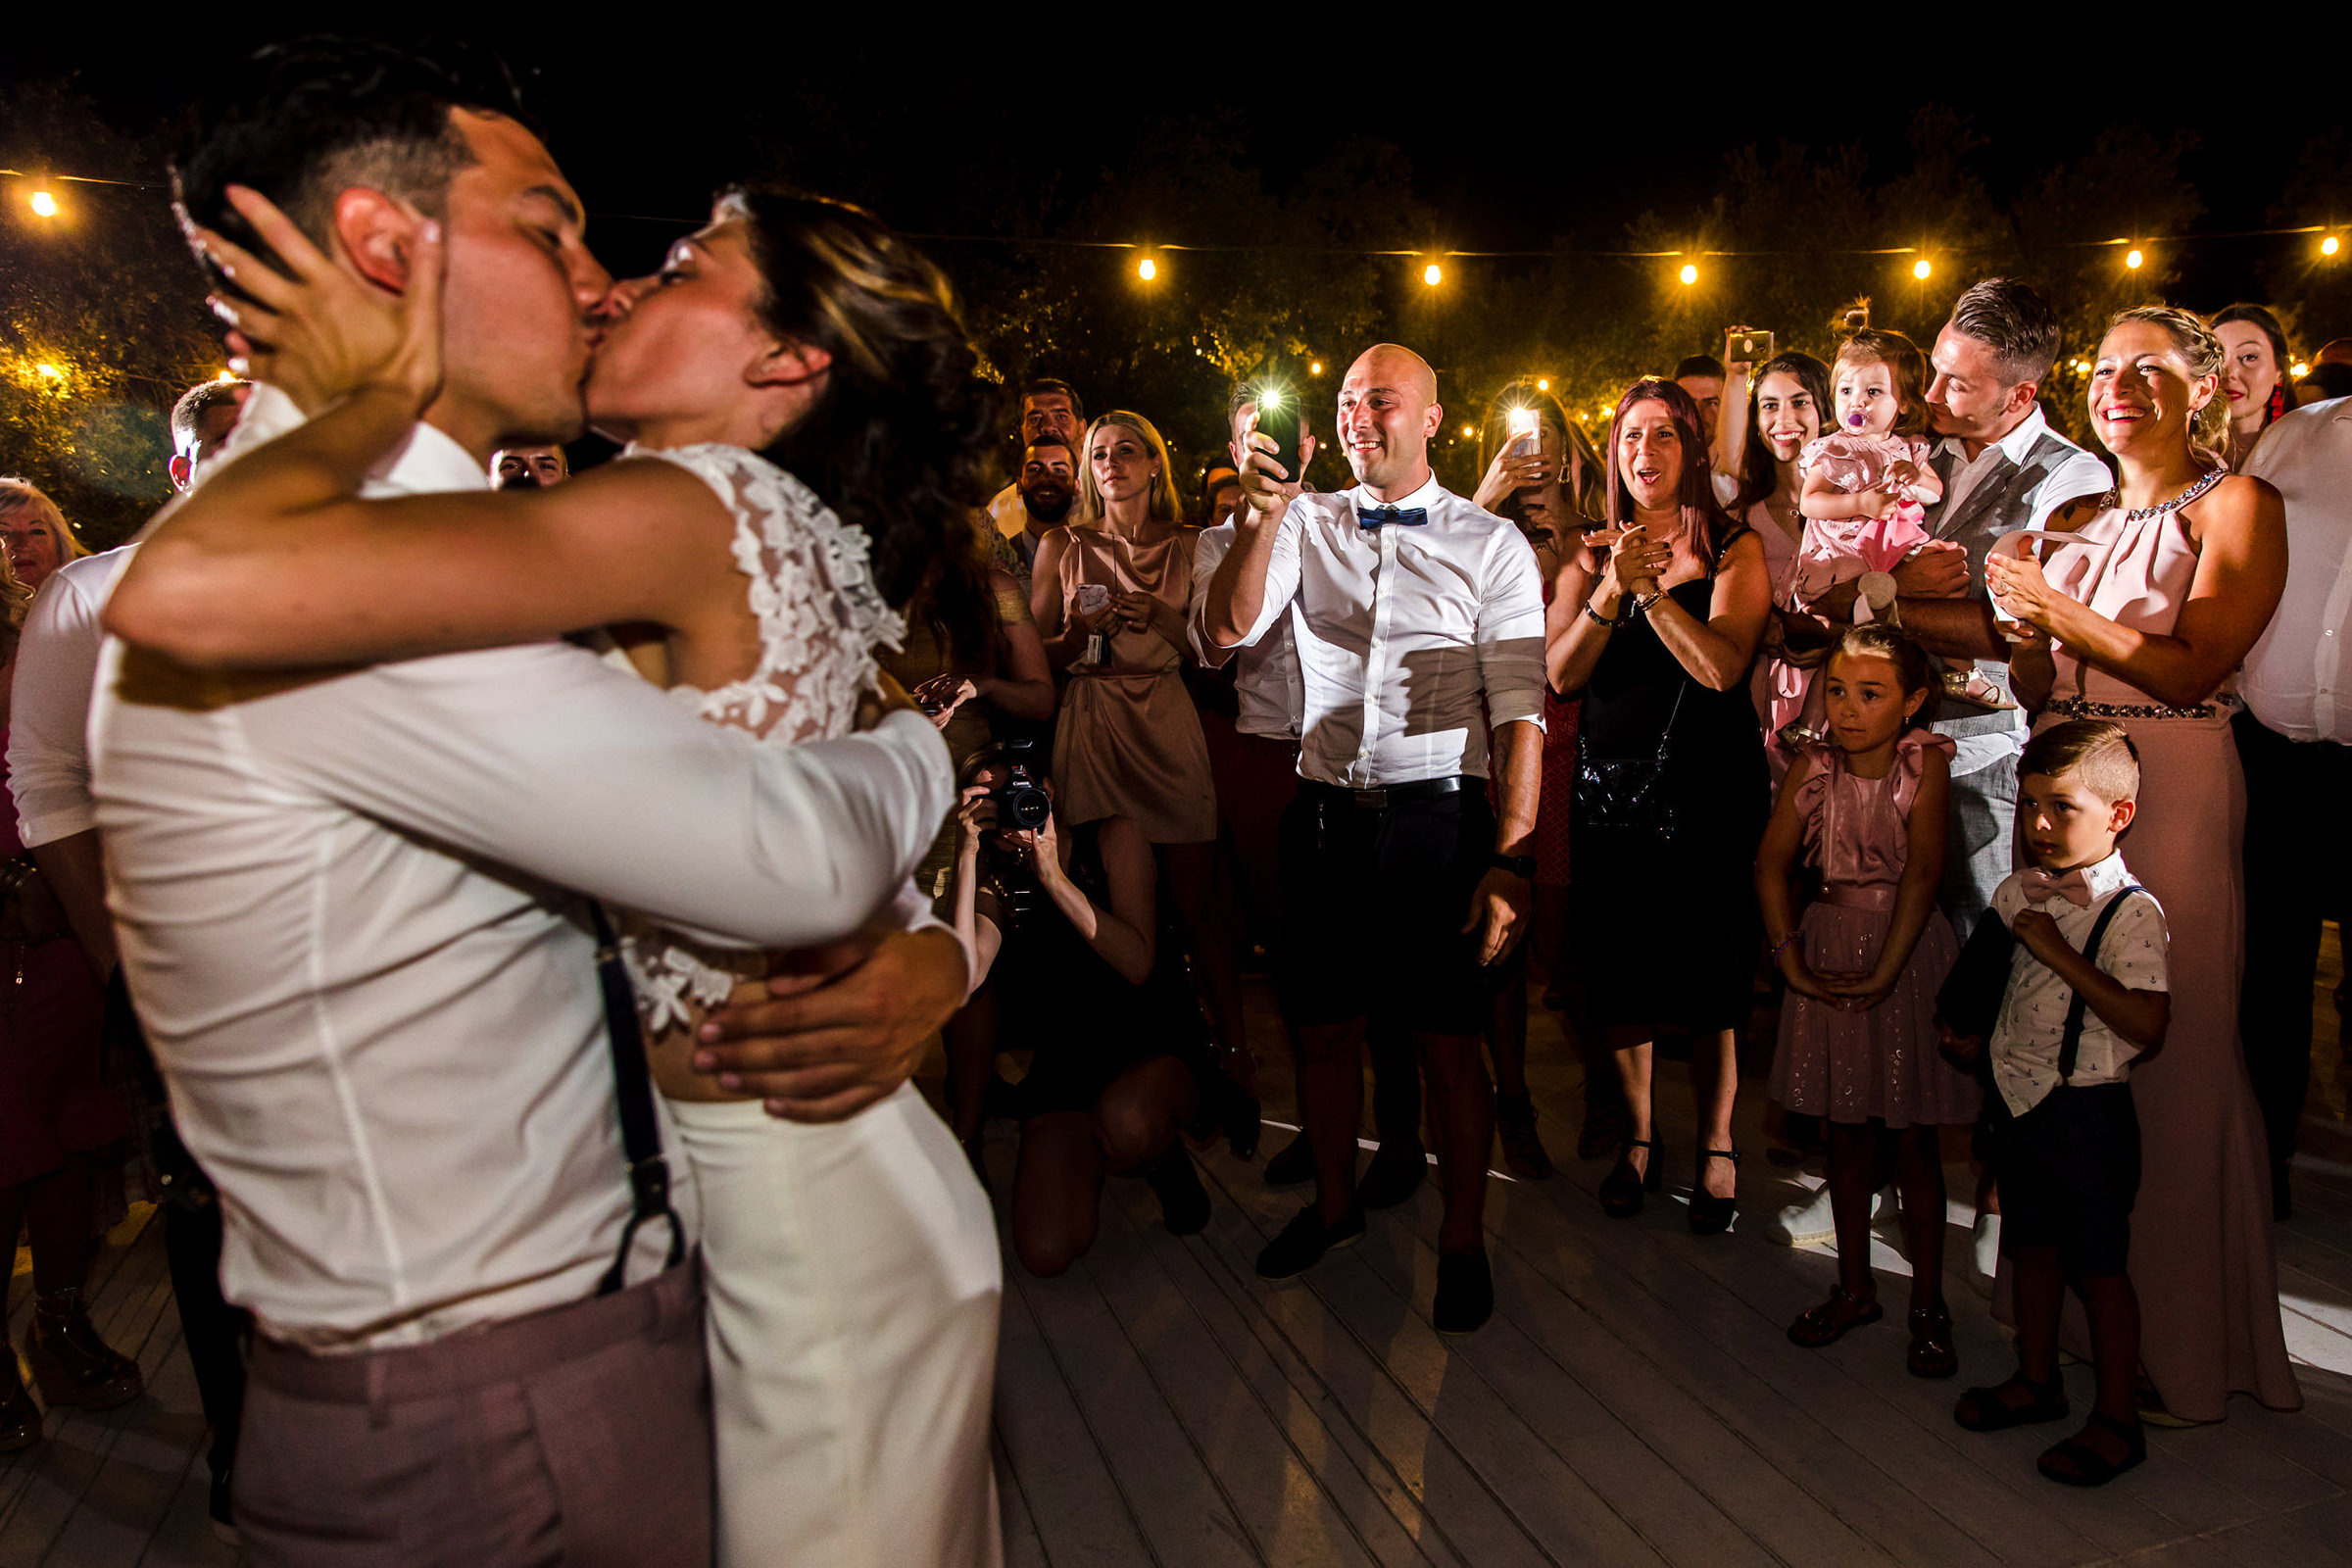 Bride and groom kiss on dancefloor as guests take photos and clap, photo by Philippe Swiggers